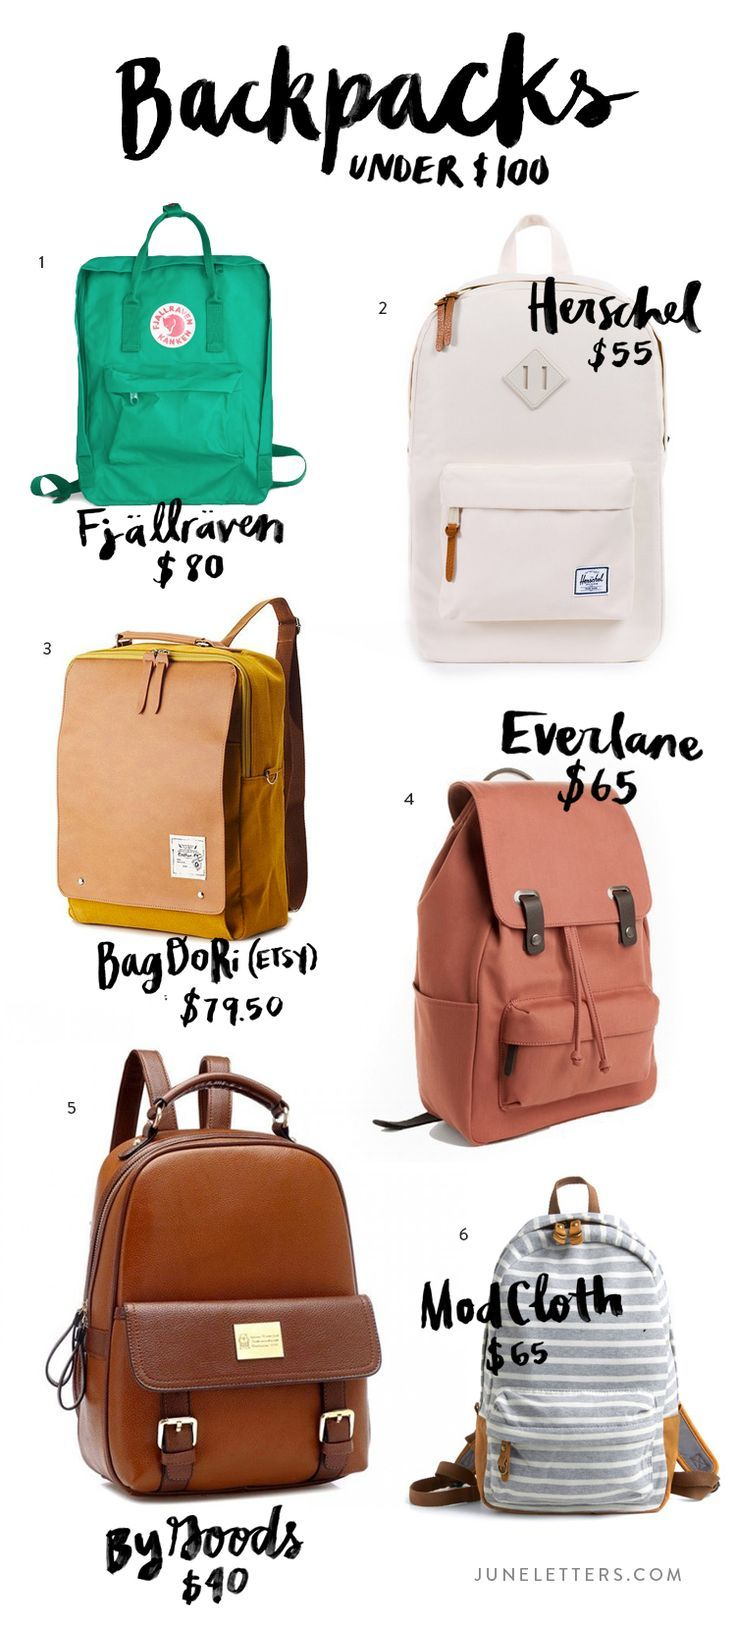 Style Monday: Cute Backpacks Under $100 — June Letters Studio: